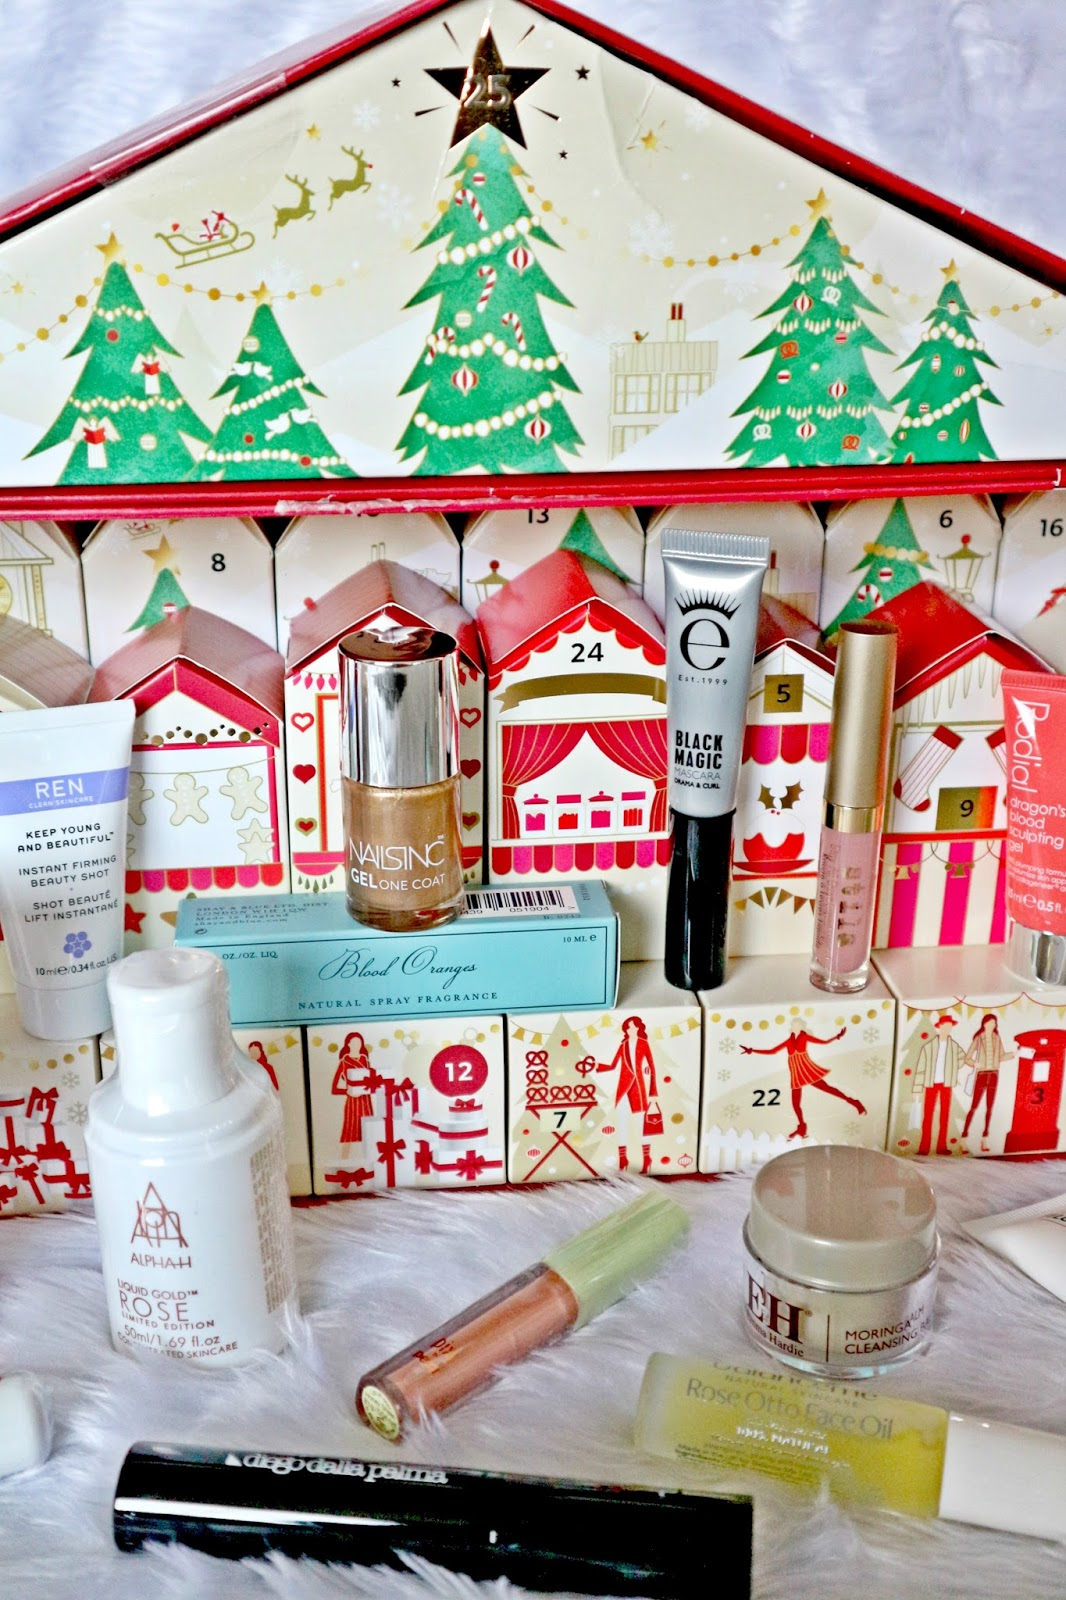 m&s beauty advent calendar 2017